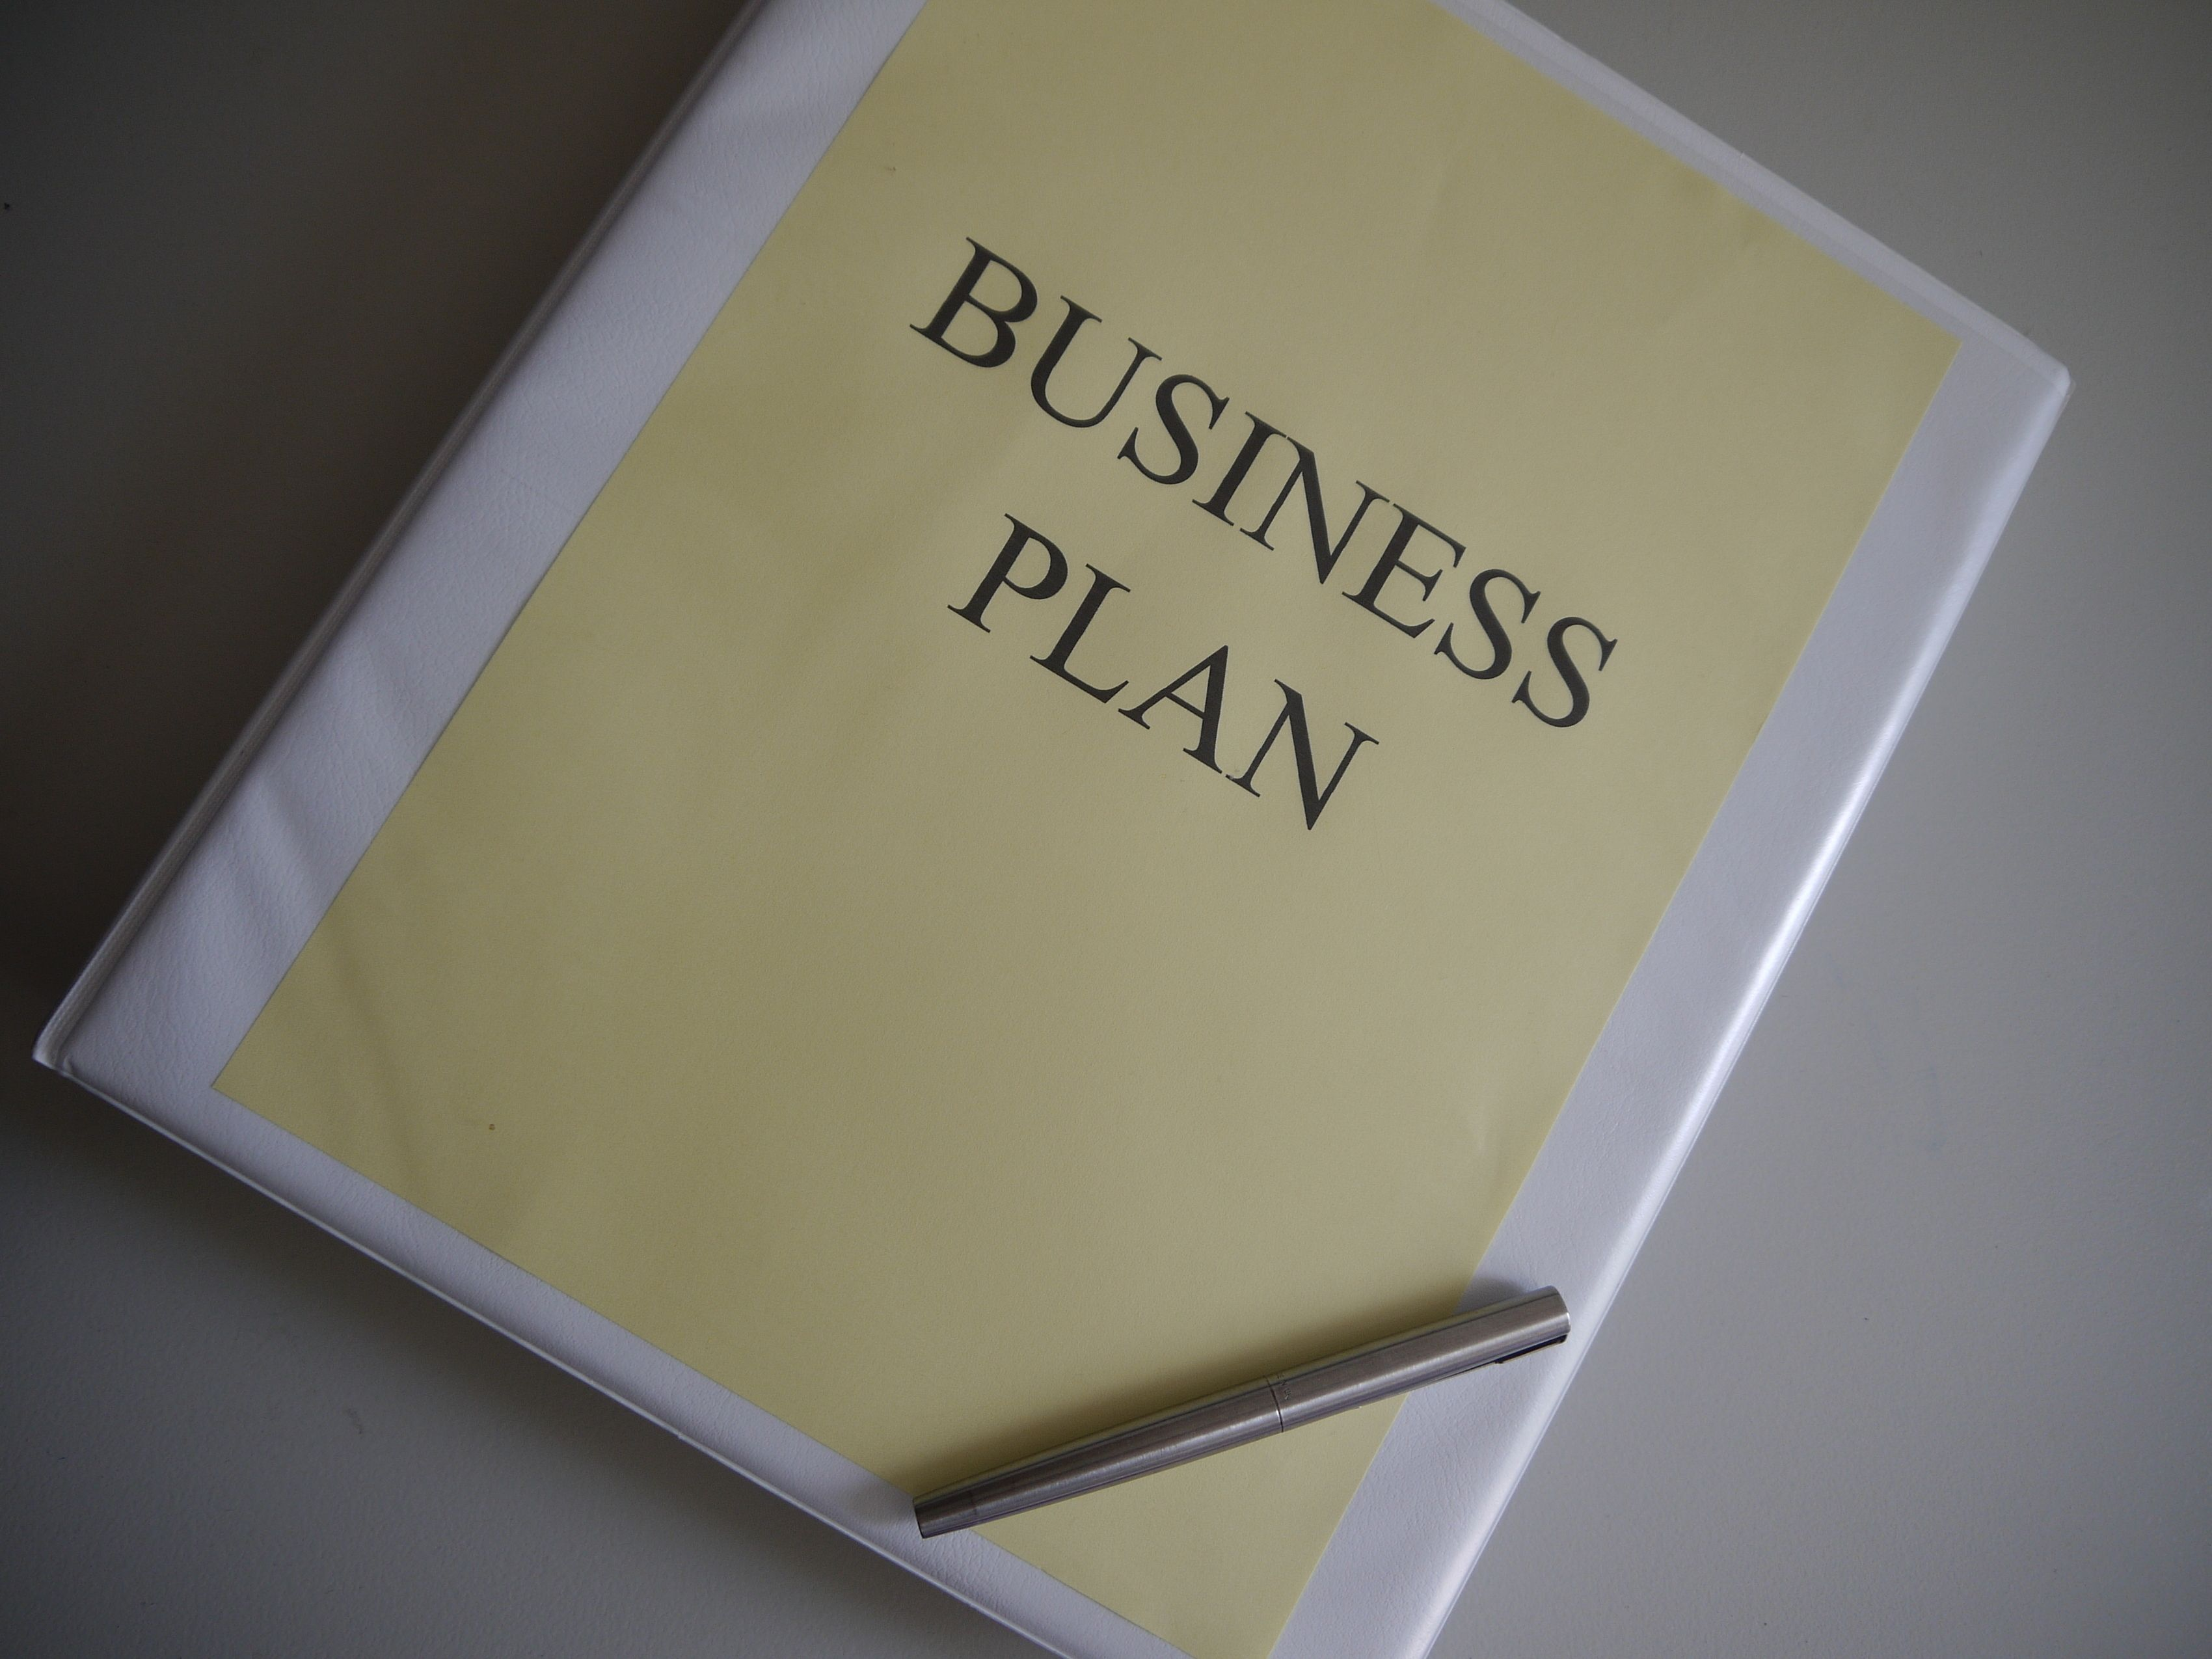 Where to buy business plan